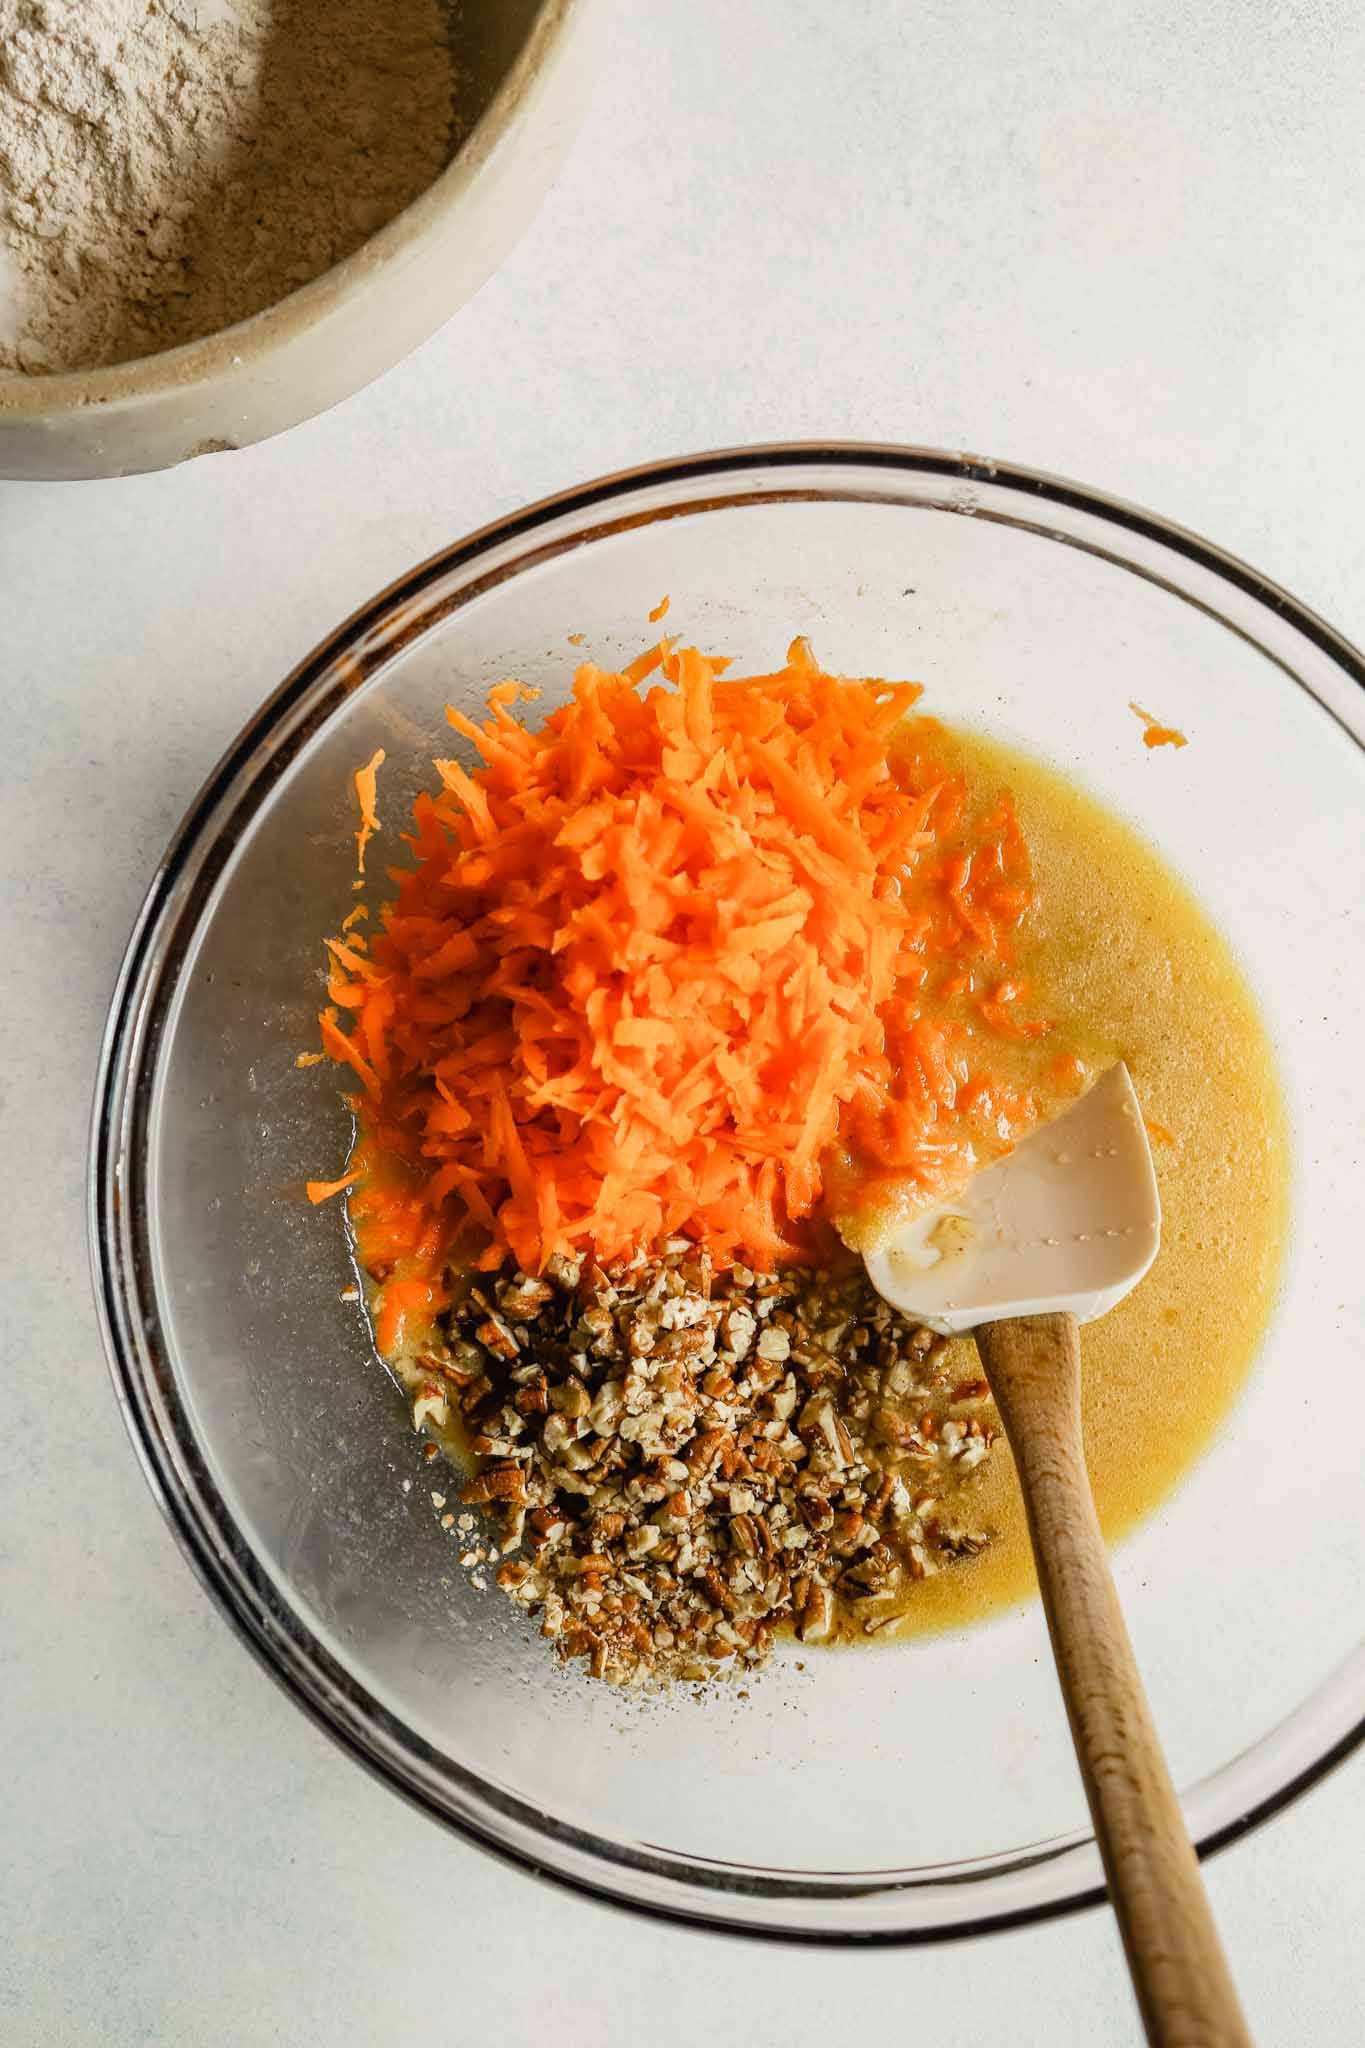 Photograph of shredded carrots and chopped pecans in a bowl with wet ingredients